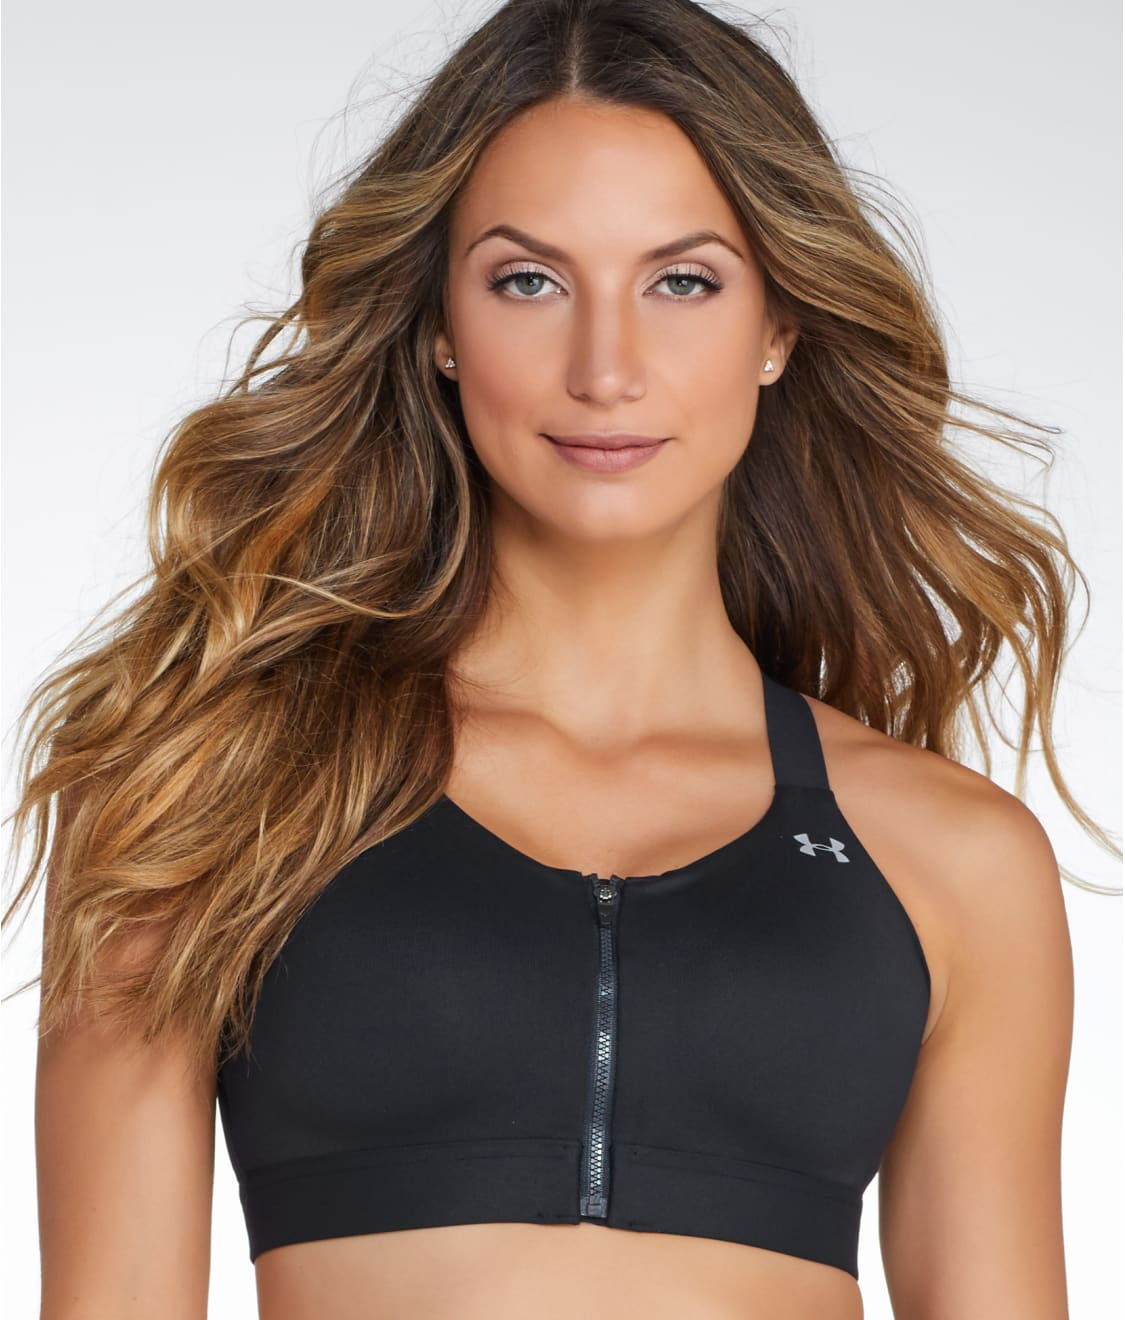 fb8b0ed649 Under Armour Armour® Eclipse High Impact Wire-Free Sports Bra